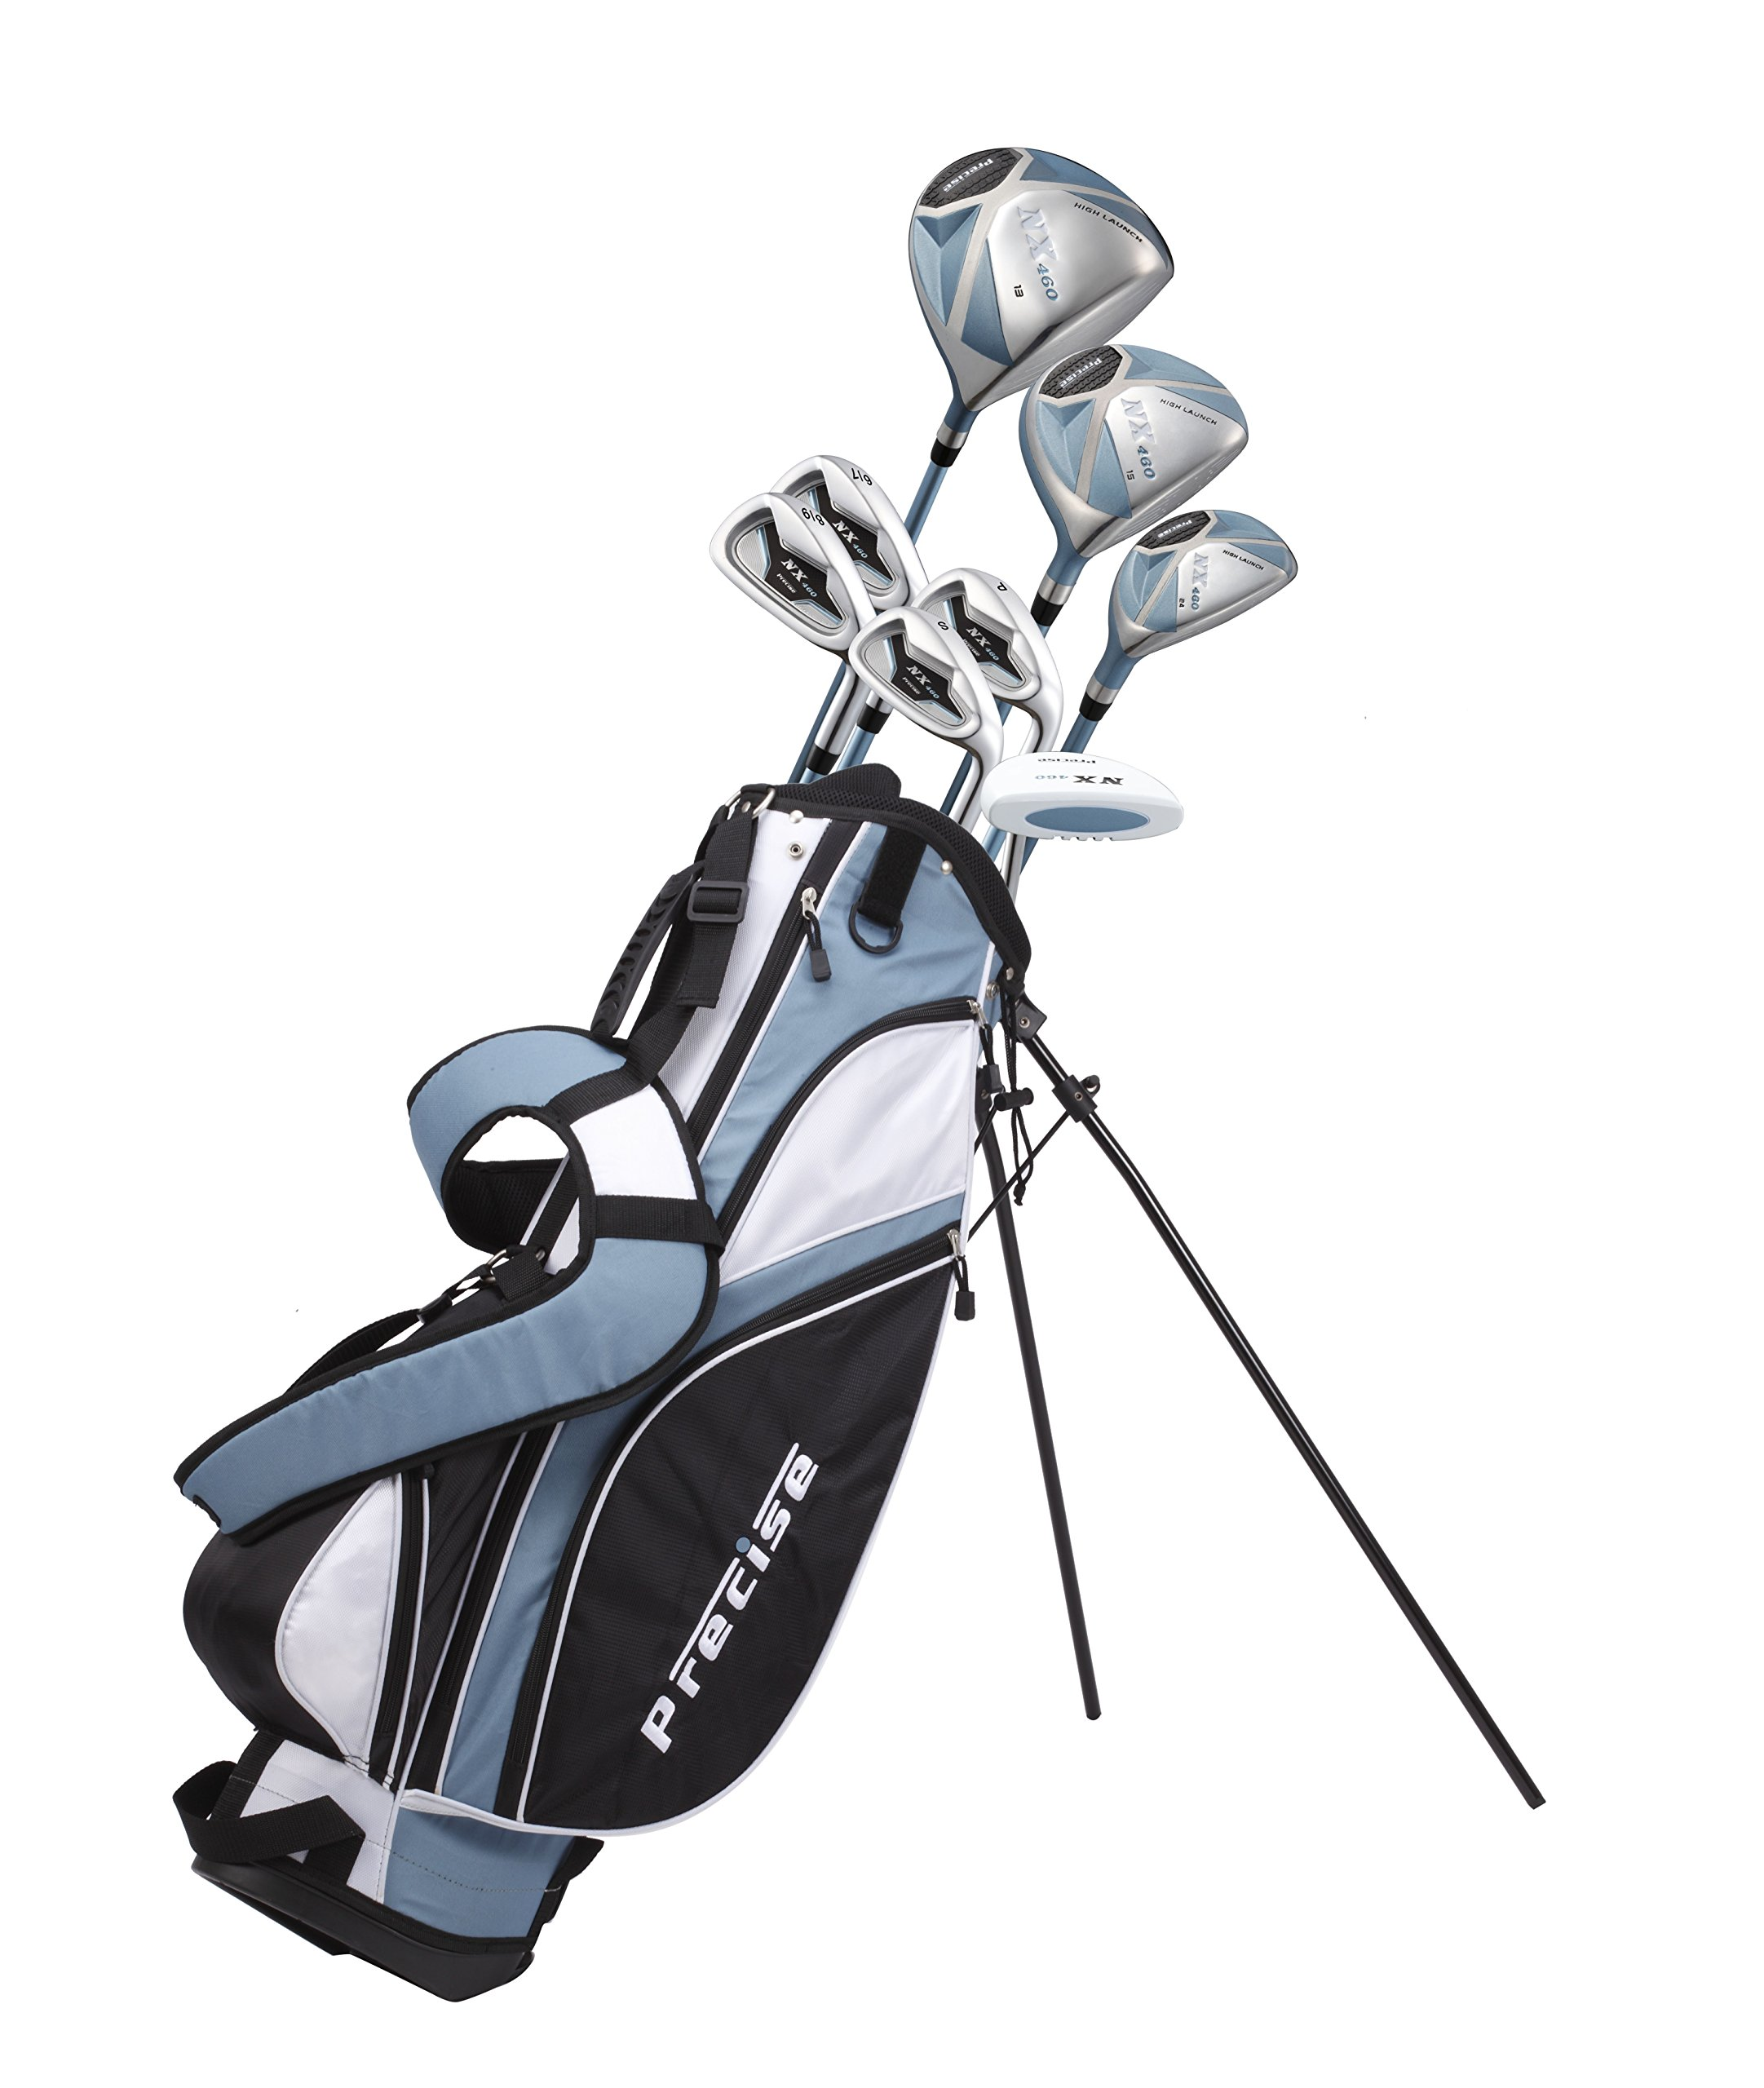 Precise NX460 Ladies Womens Complete Golf Clubs Set Includes Driver, Fairway, Hybrid, 4 Irons, Putter, Bag, 3 H/C's - 2 Sizes - Regular and Petite Size! (Right Hand Petite Size 5'3'' and Below)